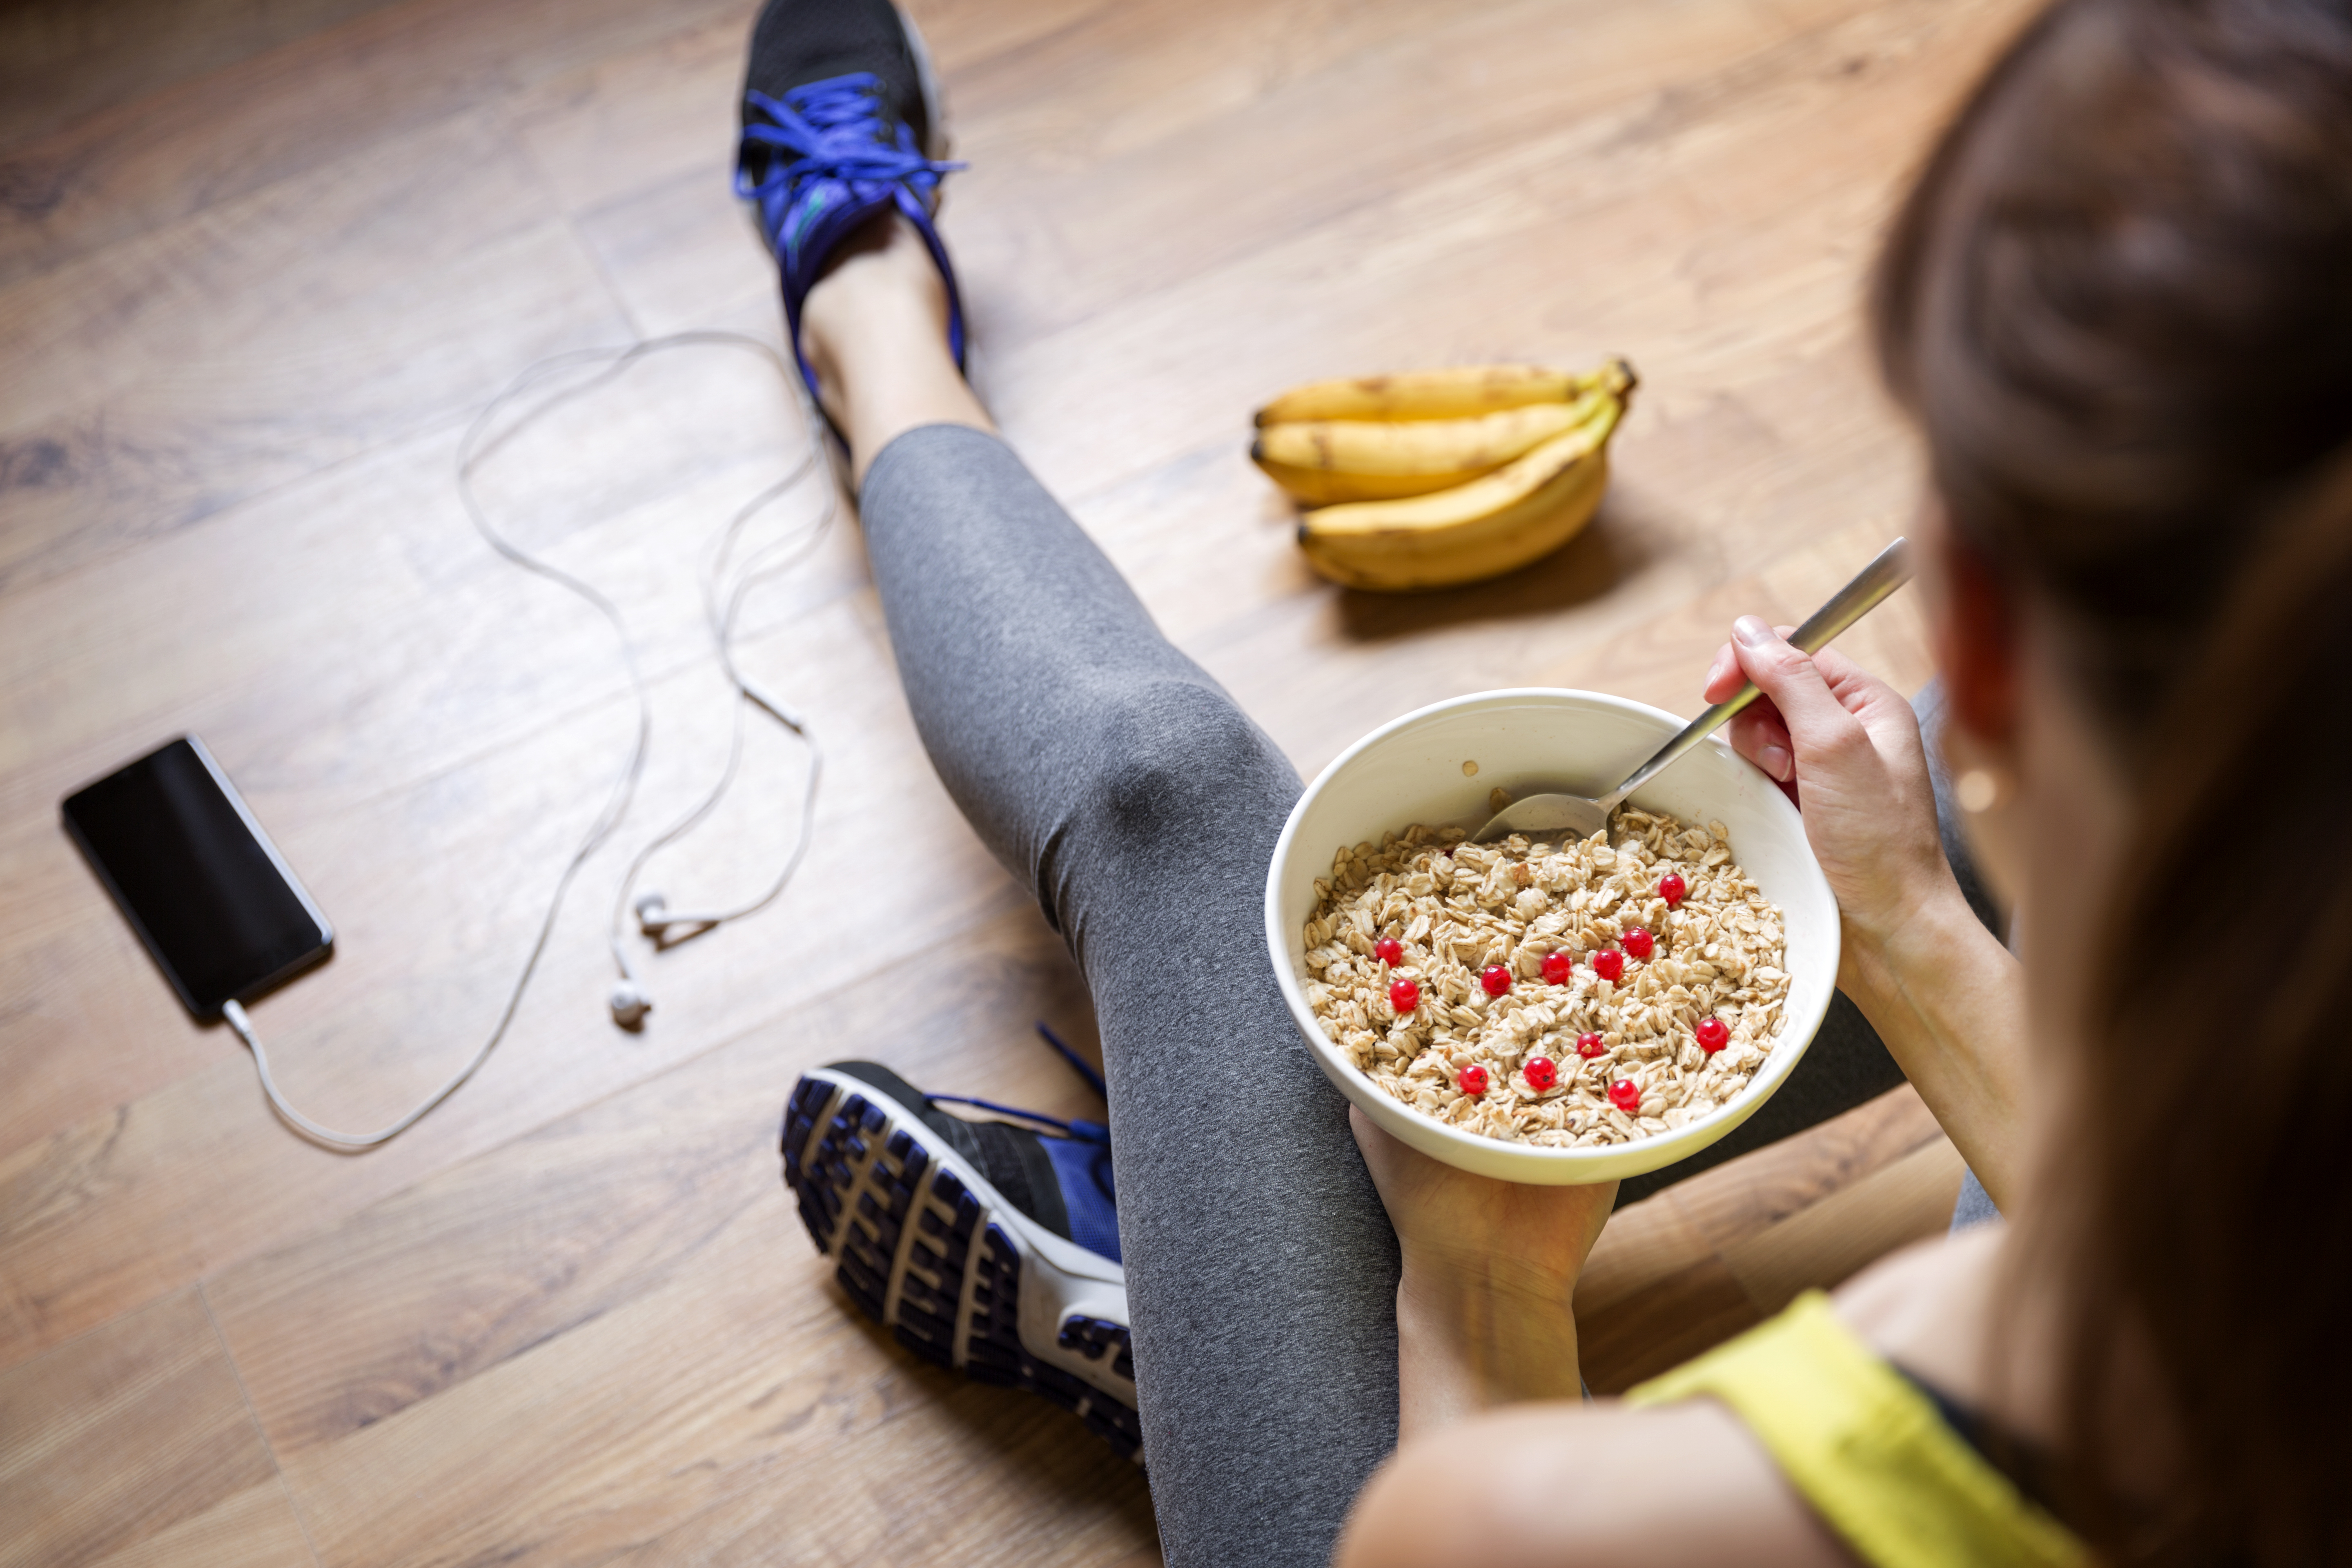 A woman eating oatmeal with berries after a workout